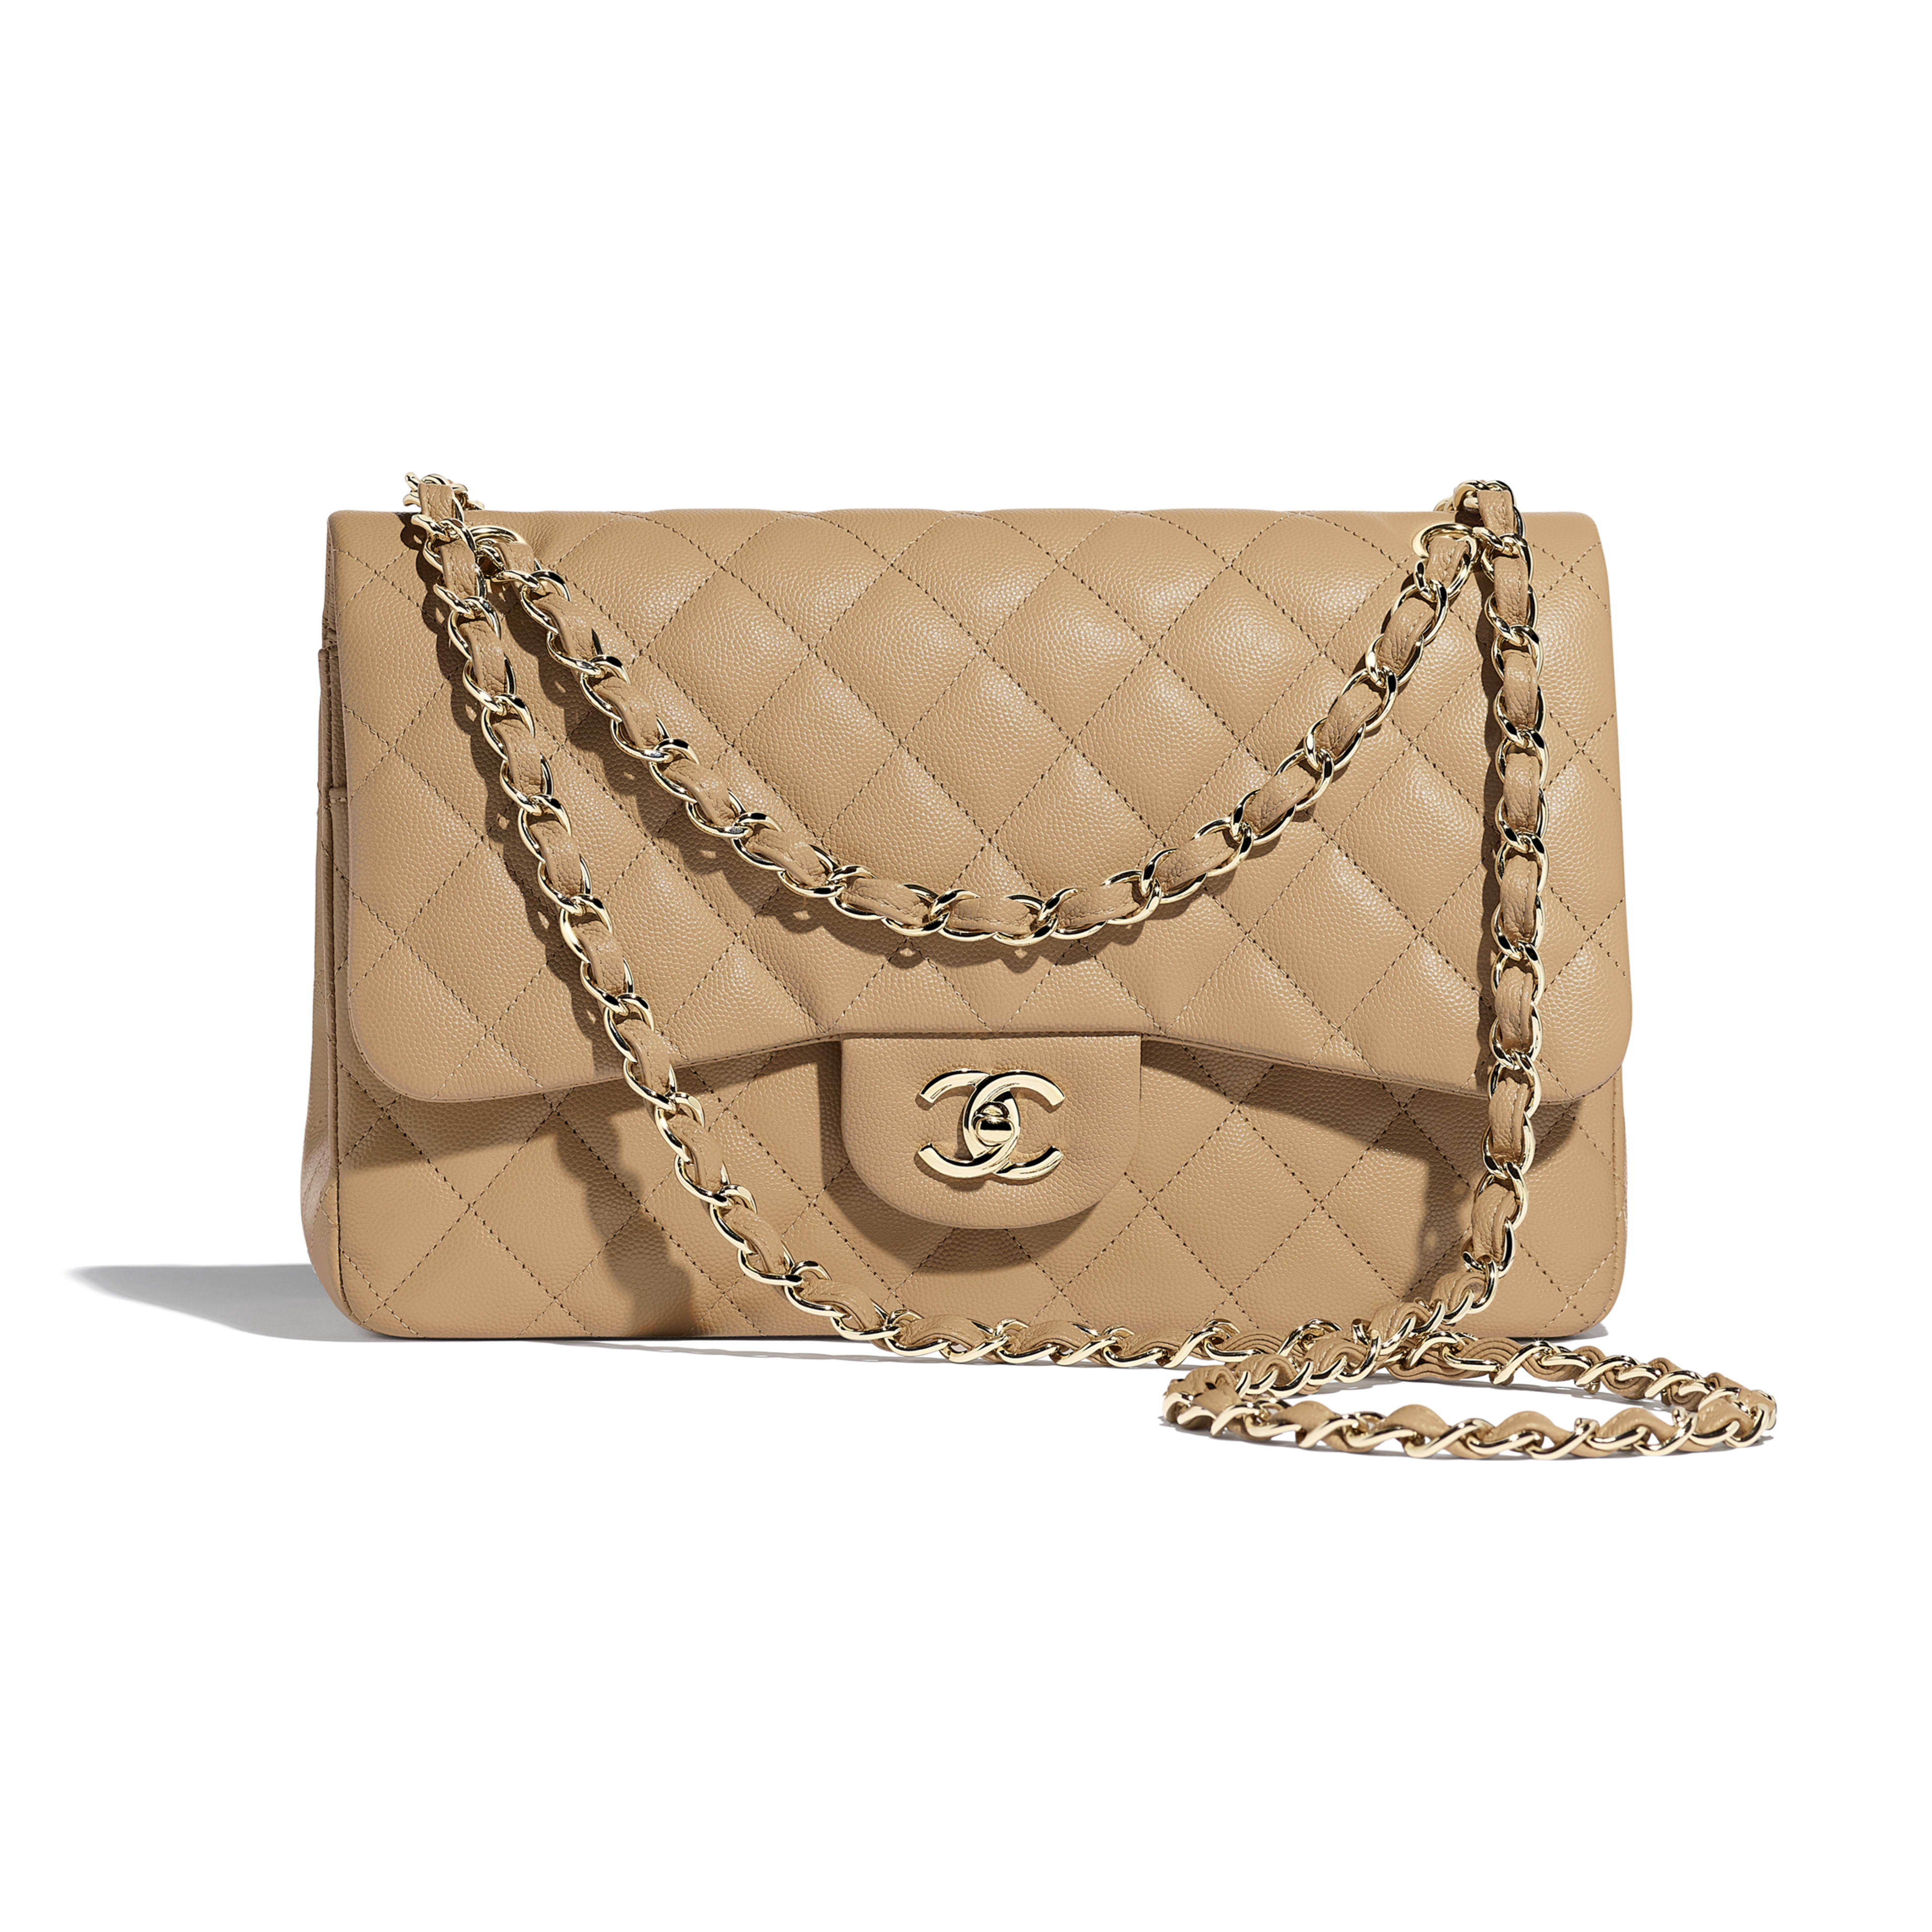 Large Classic Handbag - Beige - Grained Calfskin & Gold-Tone Metal - Default view - see full sized version